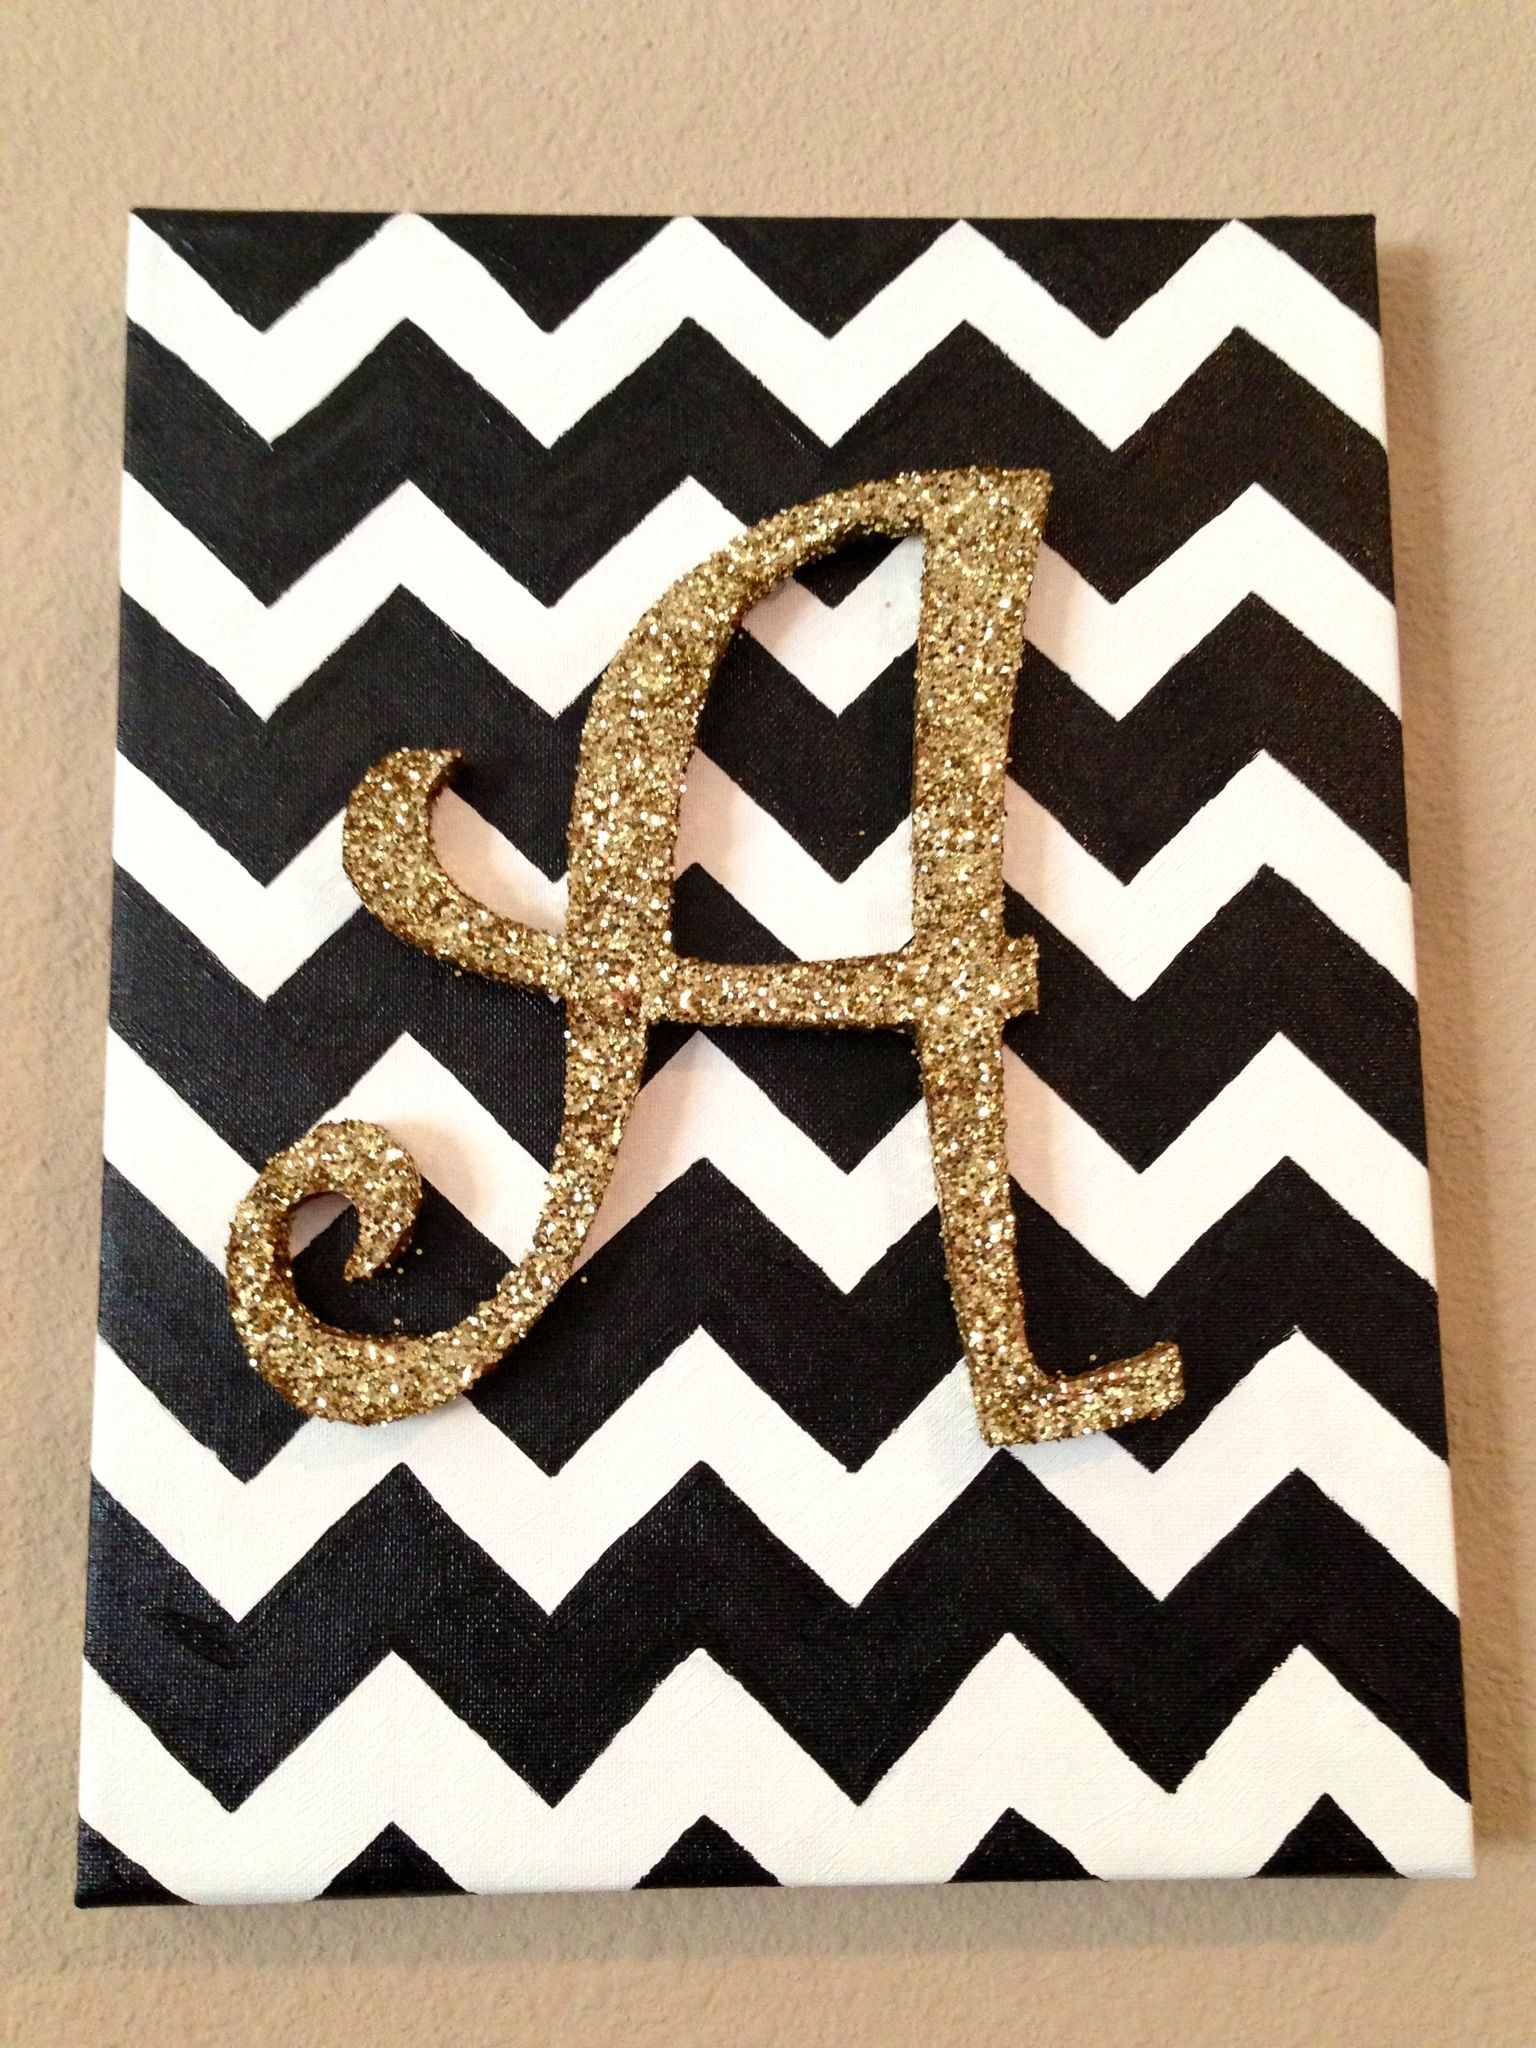 Chevron Background With A Wooden Glitter Letter On Top